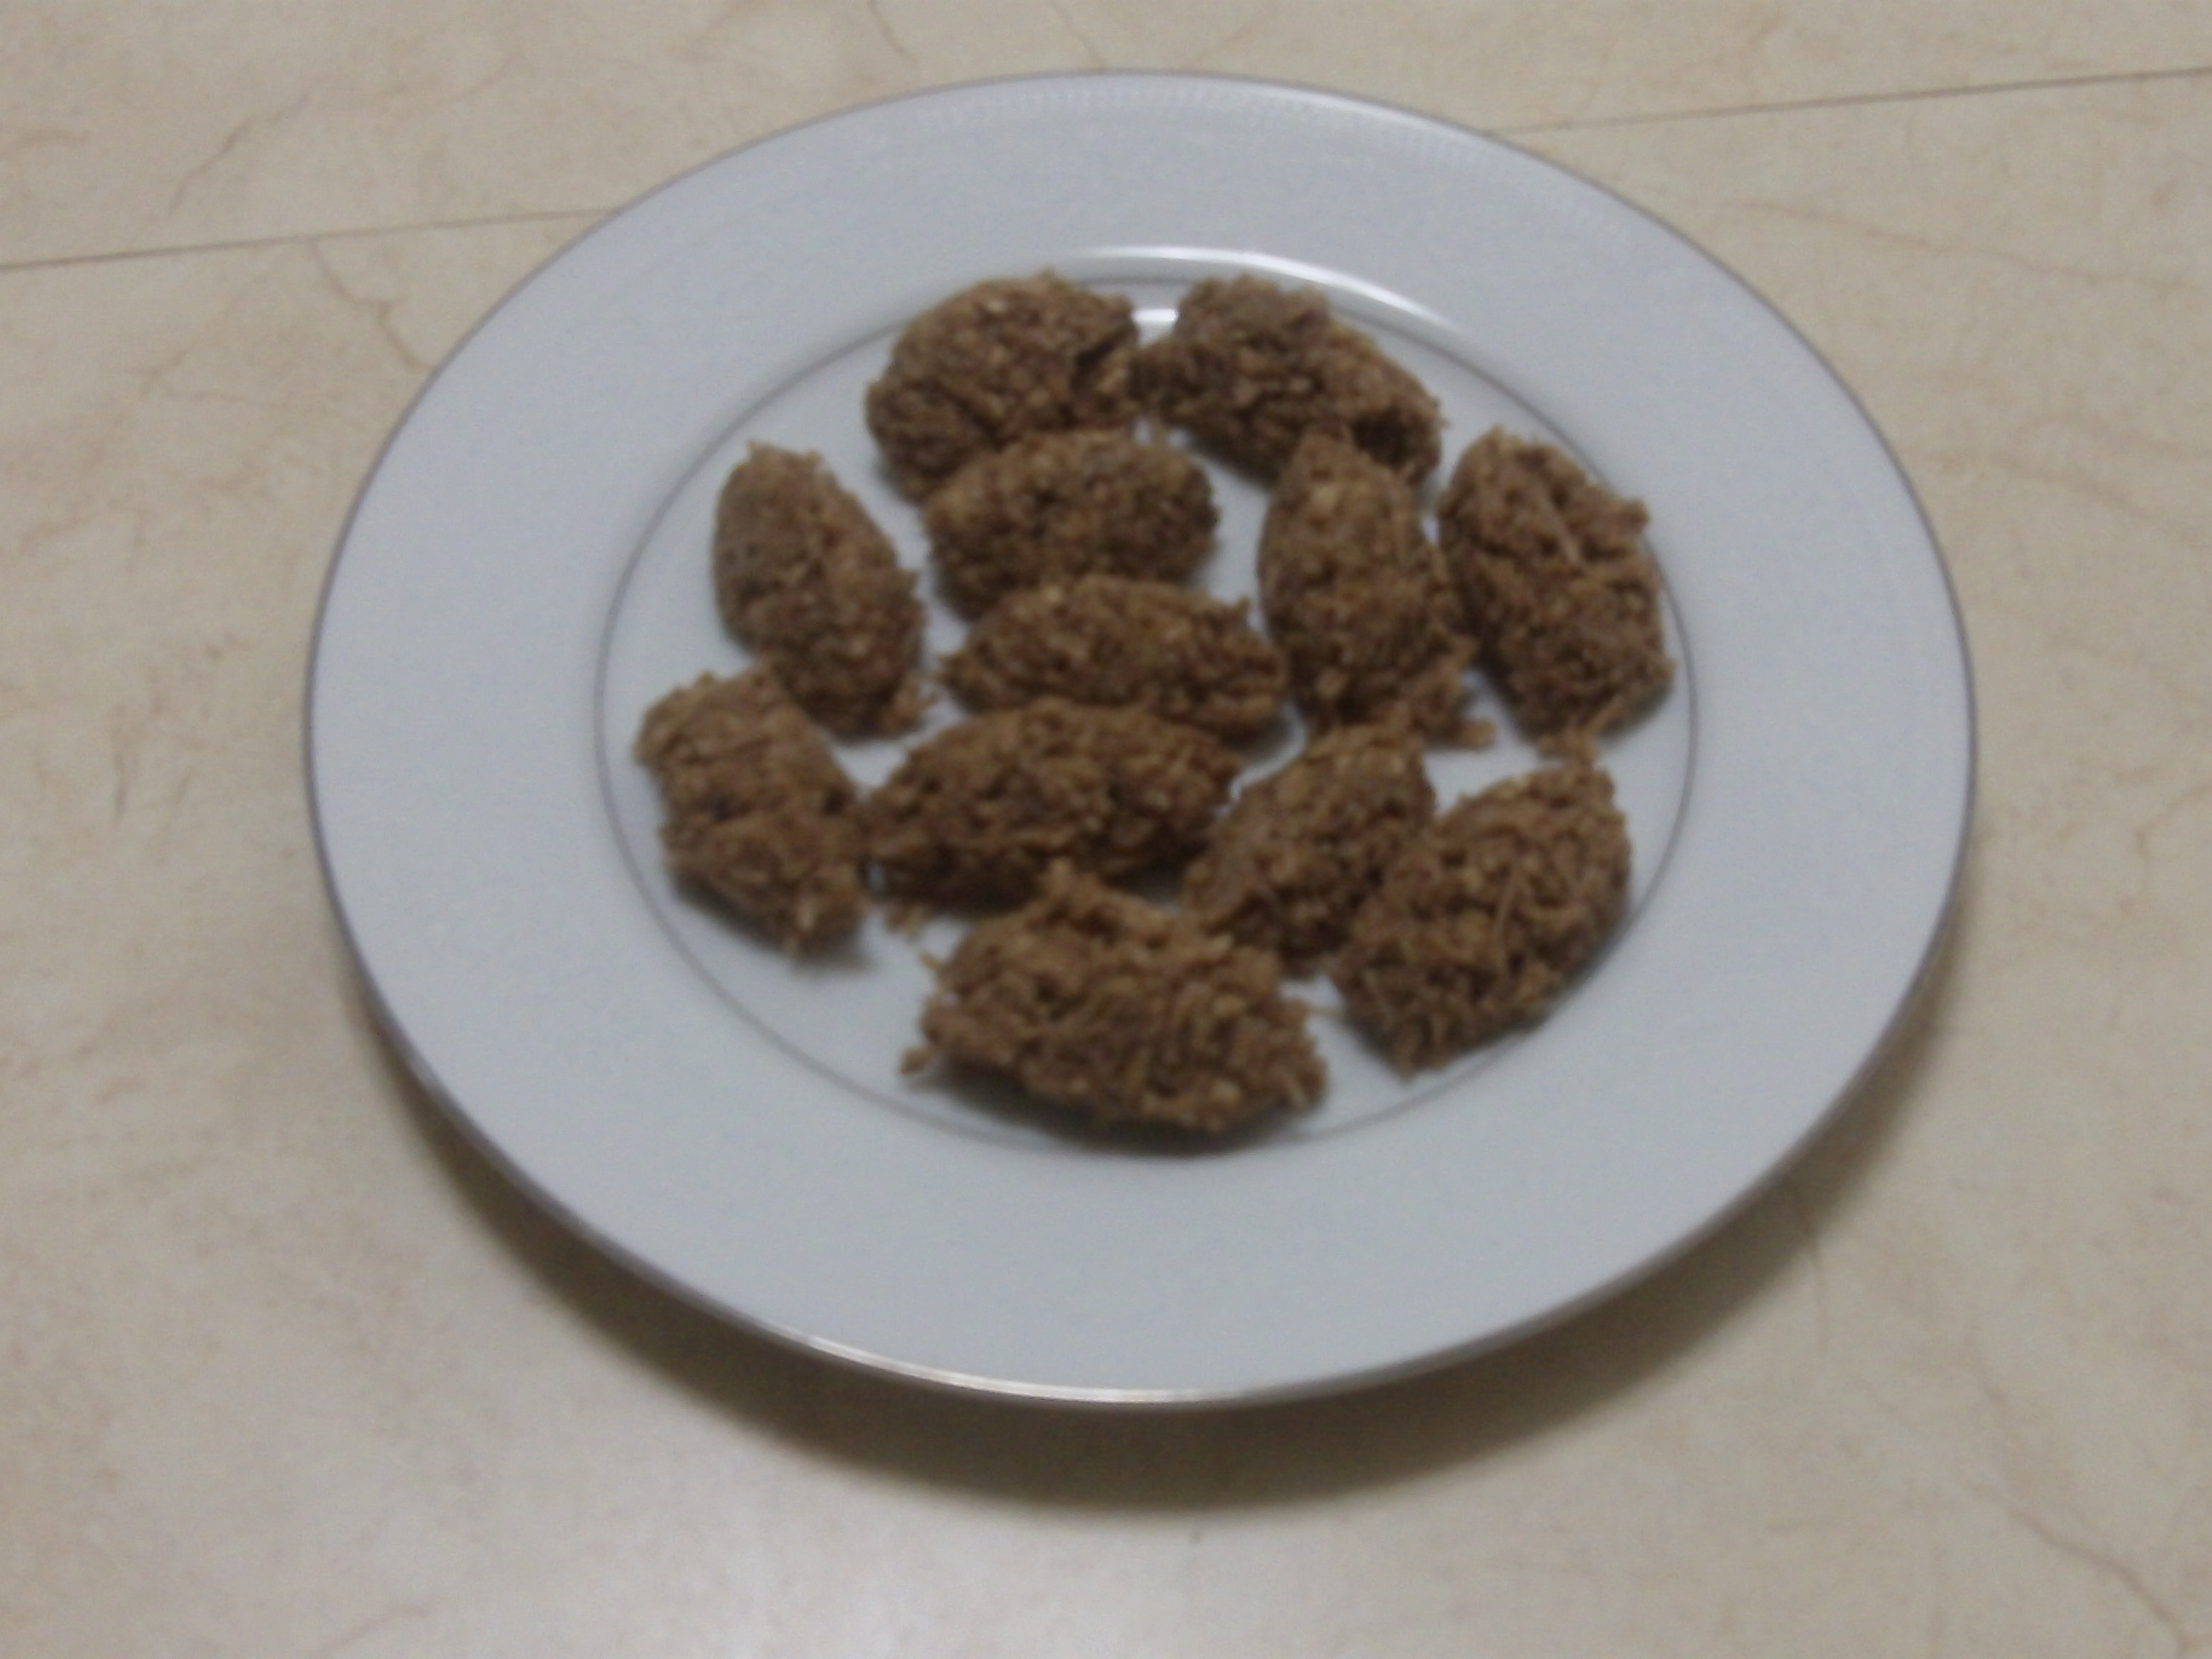 New Project: Cocoa-Coconut No-Bake Cookies